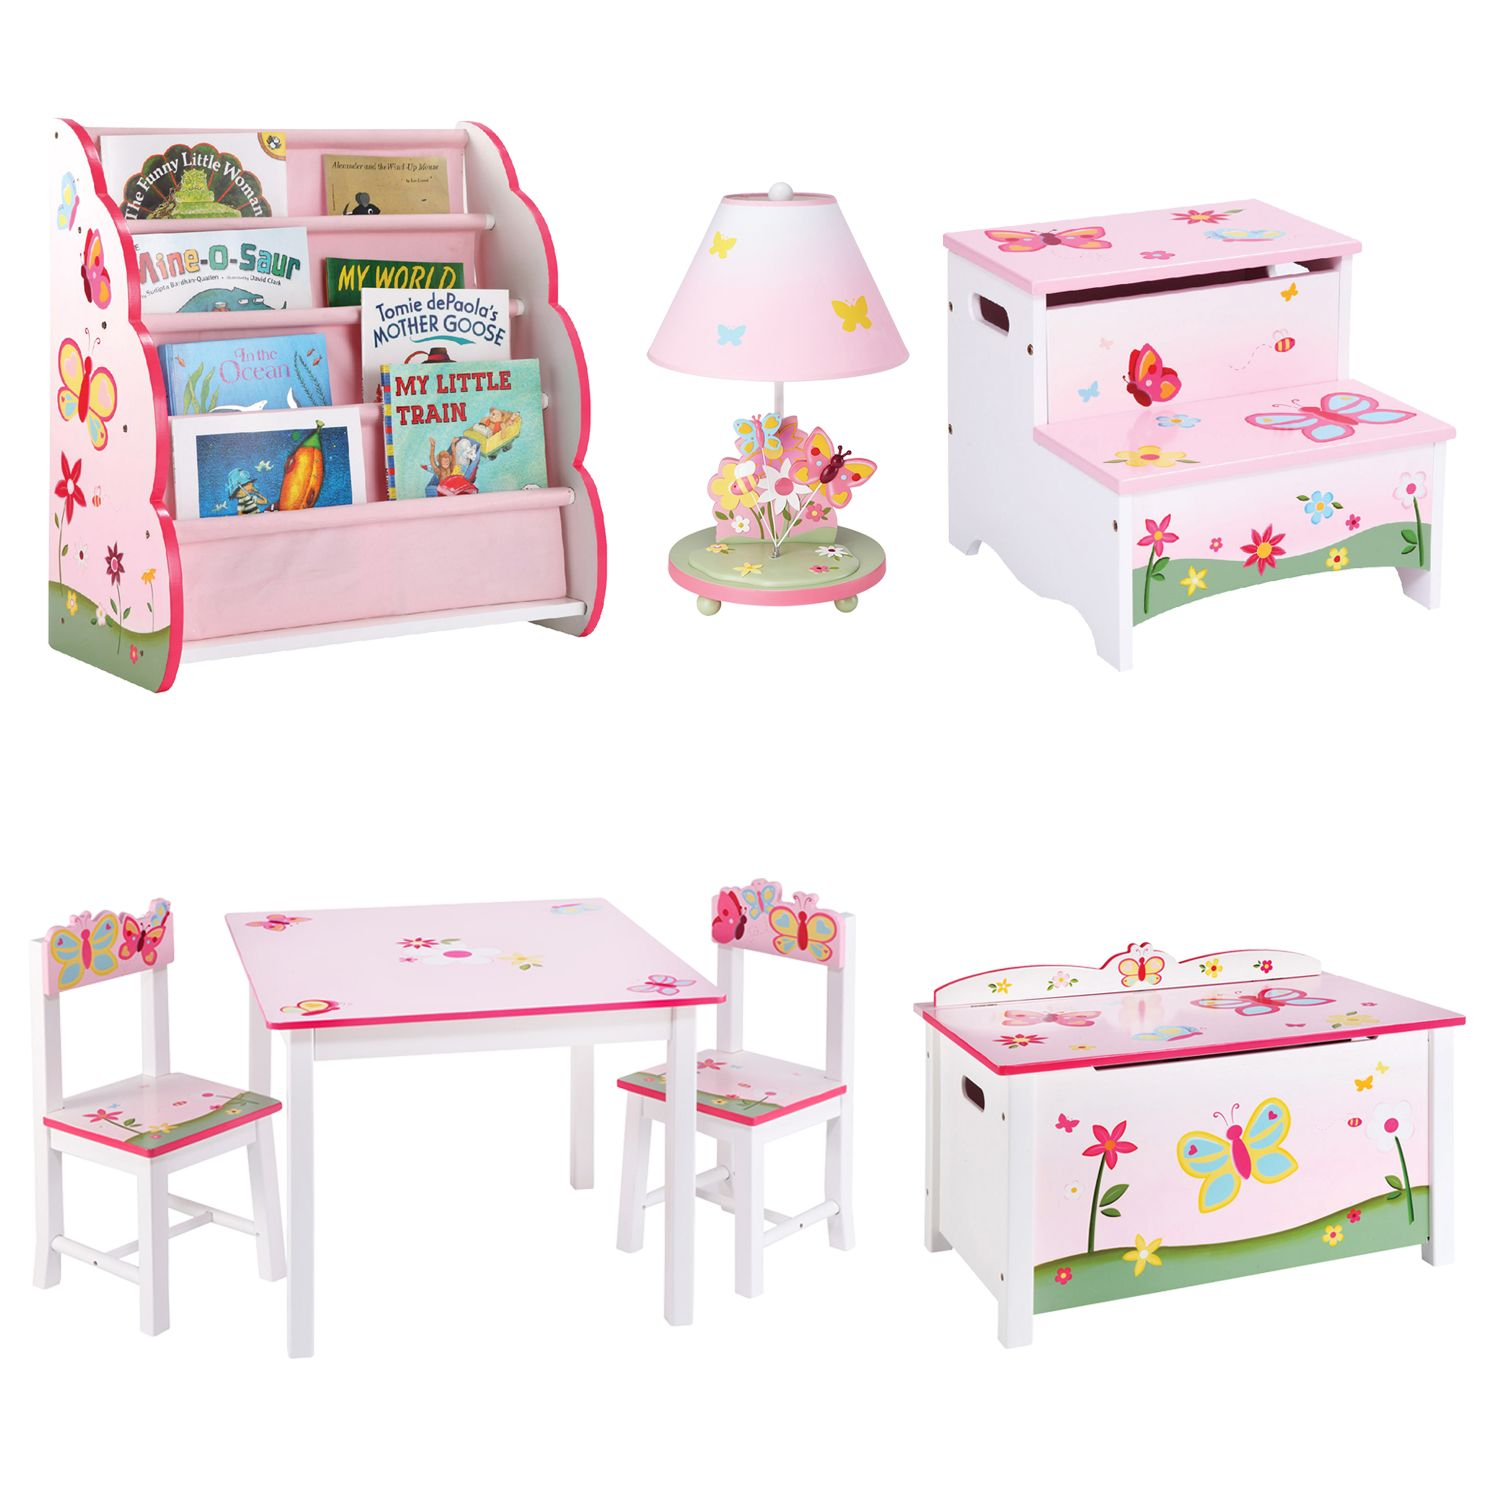 Awesome Guidecraft Butterfly Buddies Furniture Collection